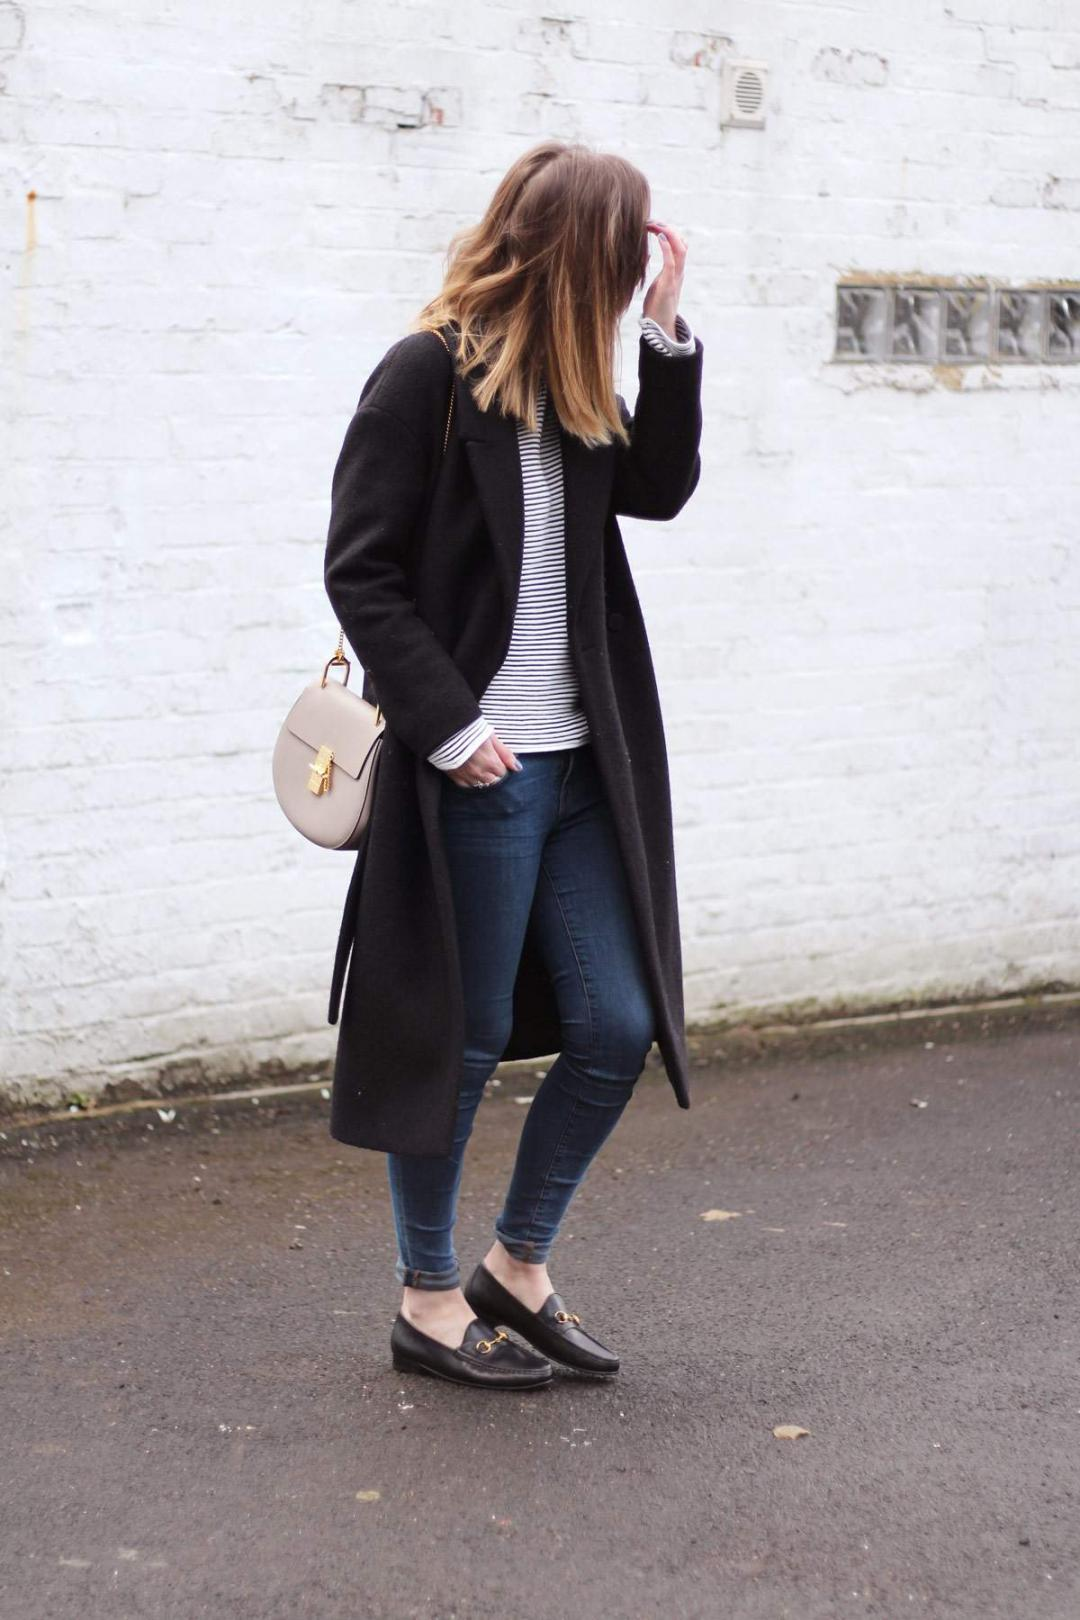 cos-coat-gucci-loafers-warehouse-striped-jumper-chloe-drew-grey-outfit-1